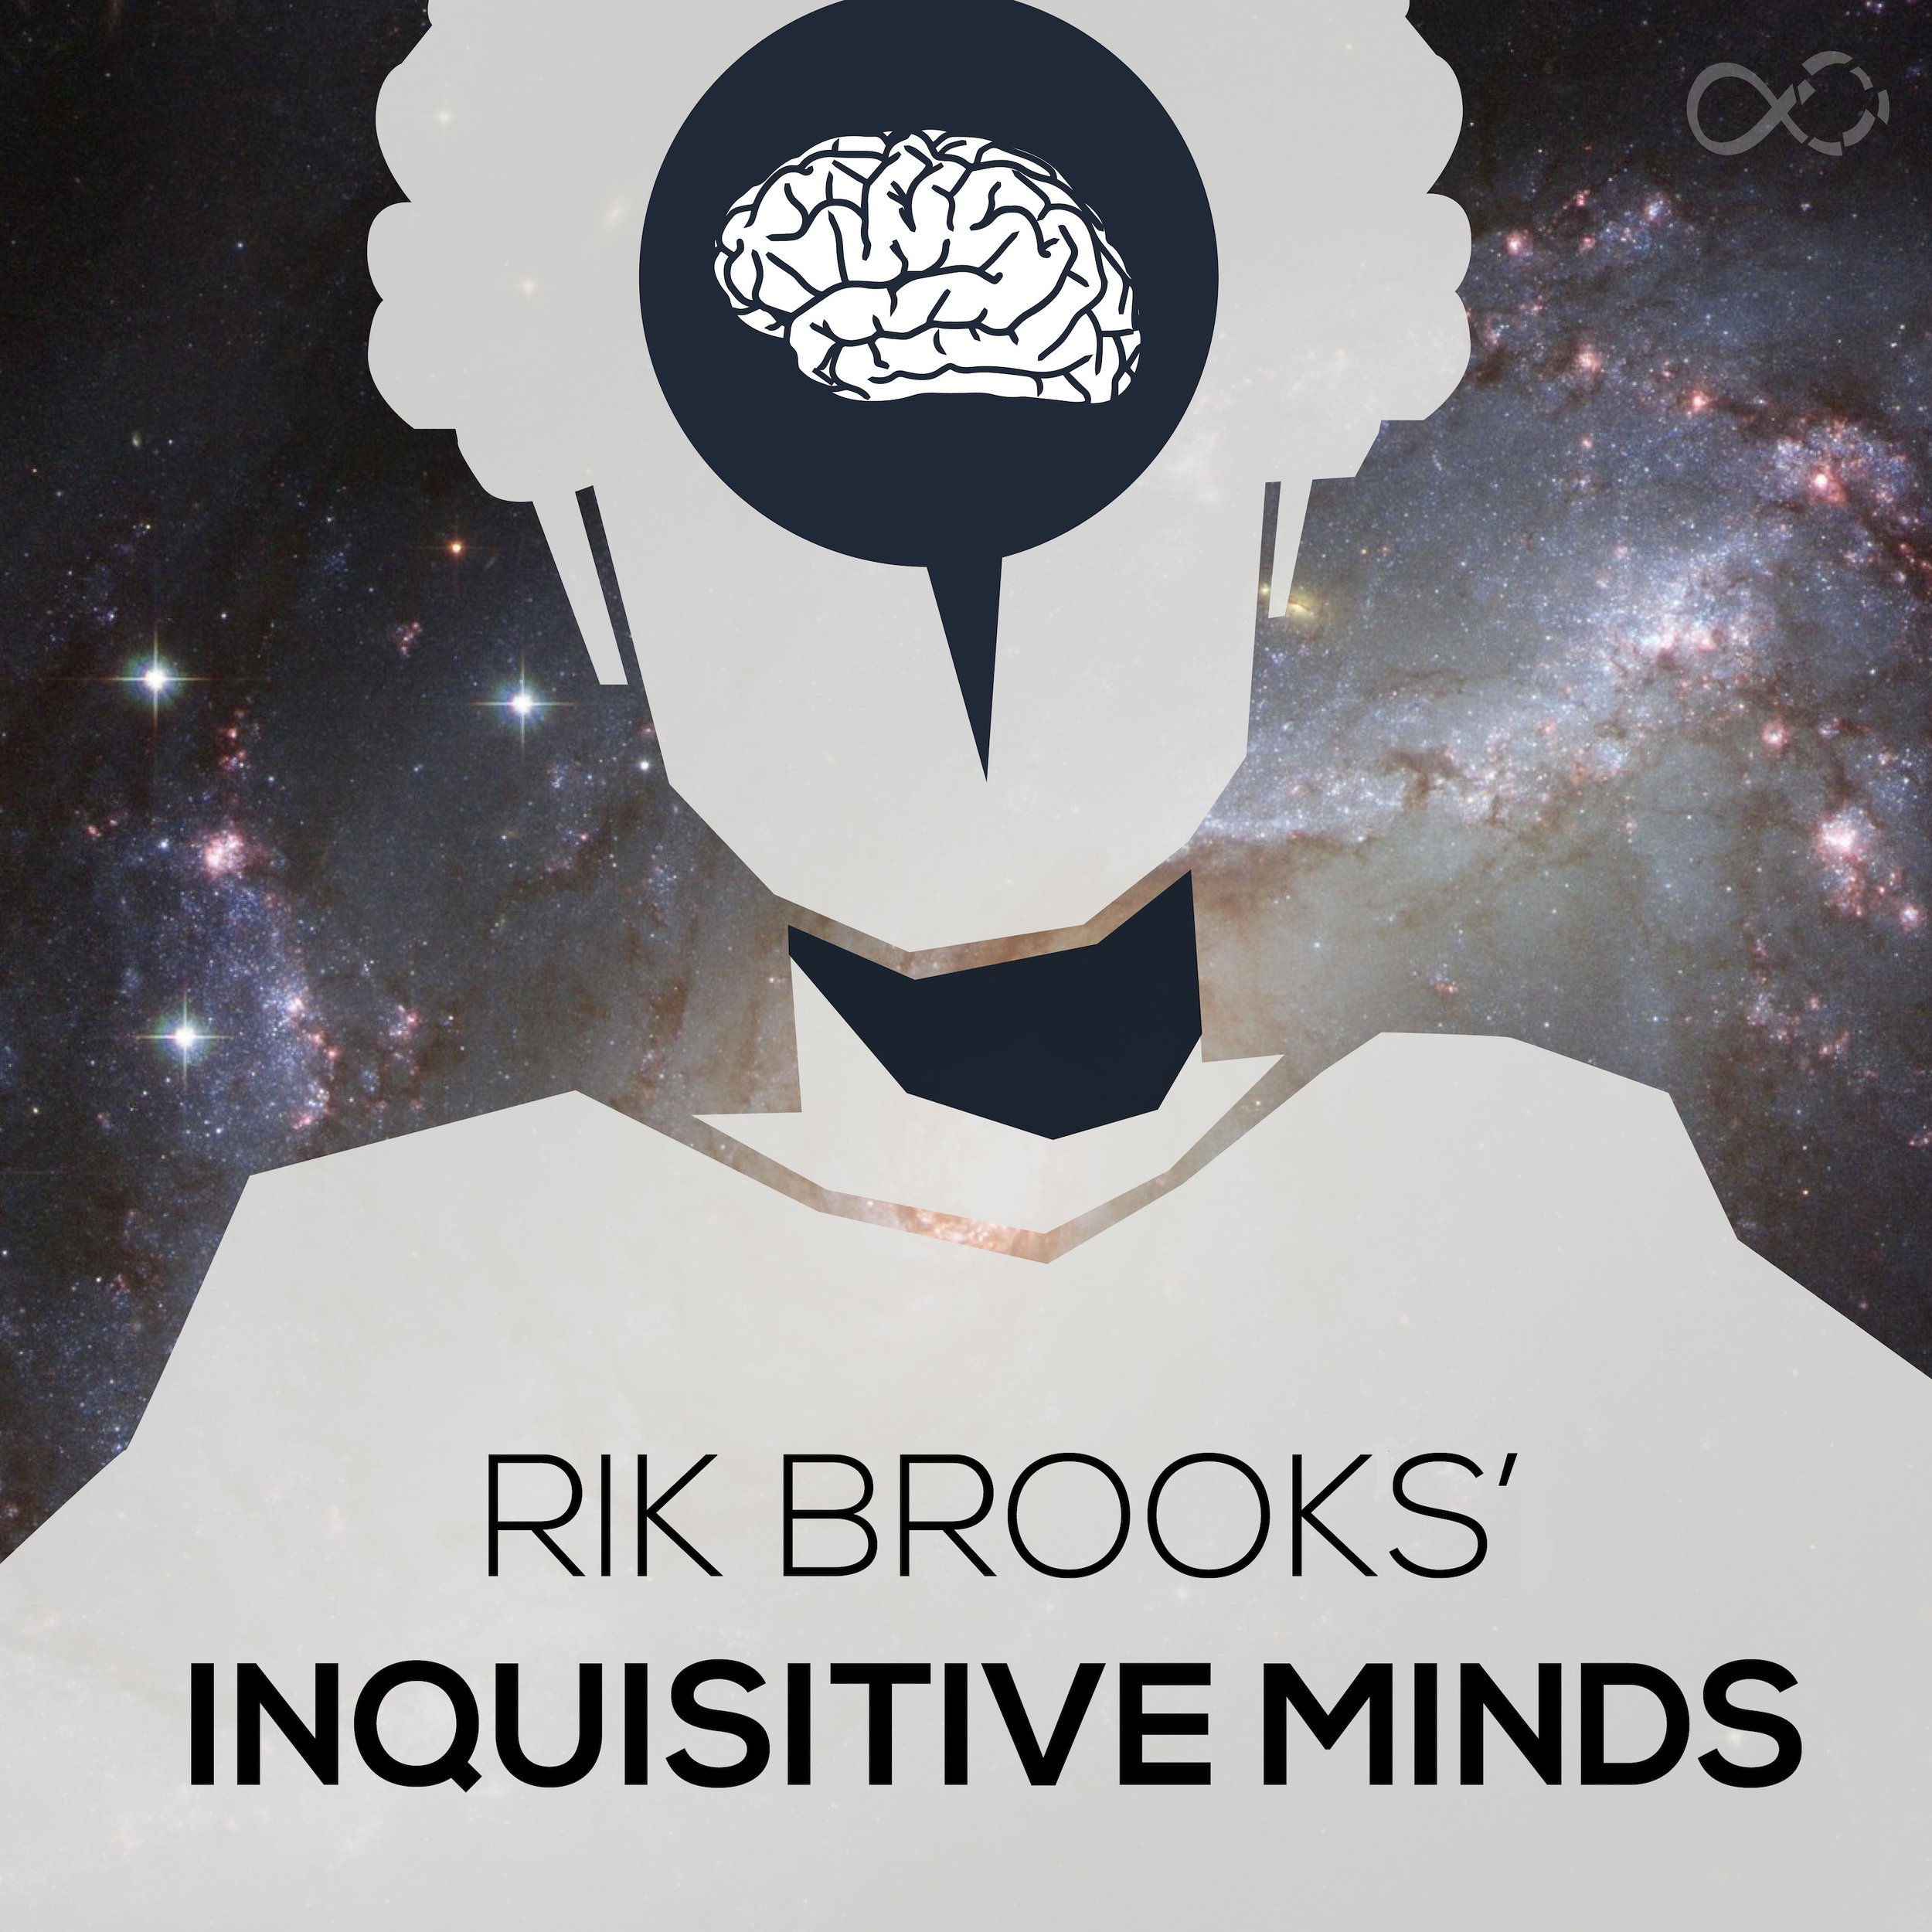 Click the logo to be taken to the Inquisitive Minds podcast page!